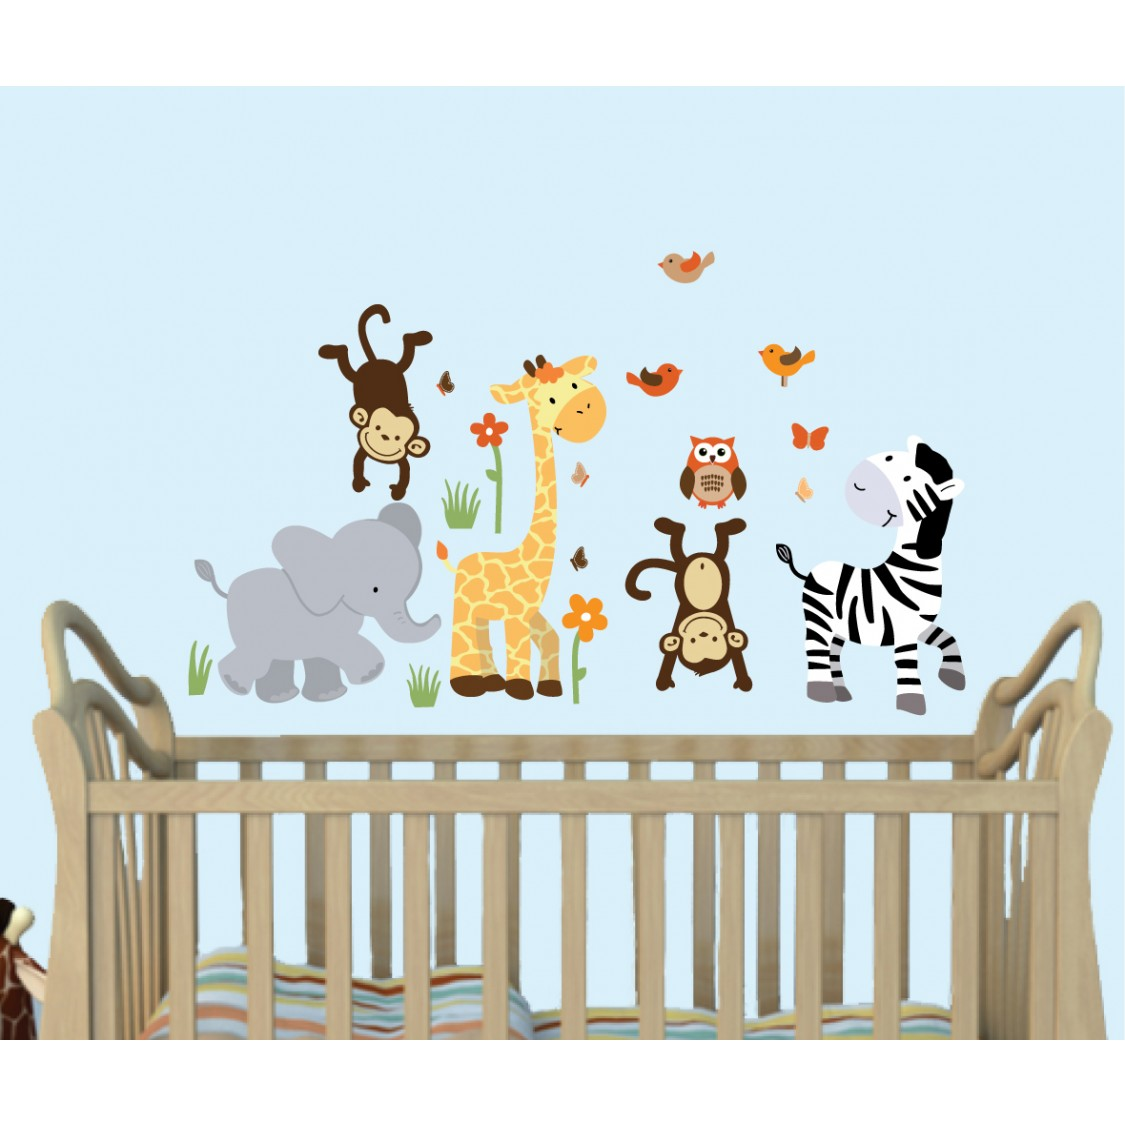 Jungle Wall Stickers For Nursery With Giraffe Wall Decals For Children